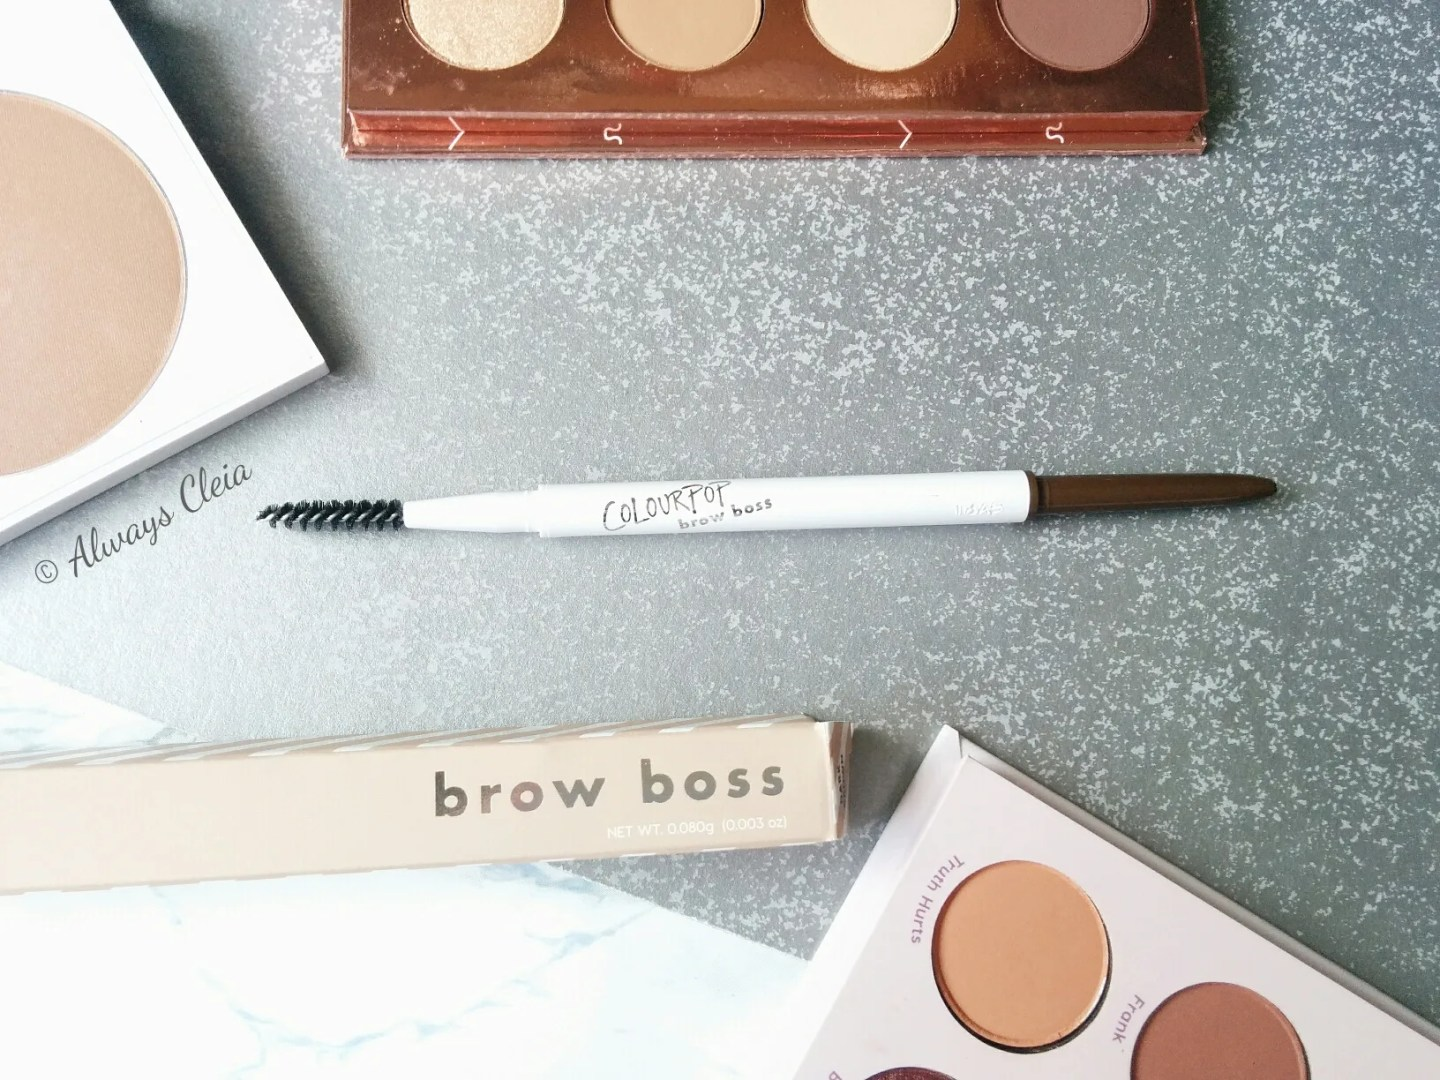 ColourPop Haul #3 - Brow Boss Pencil